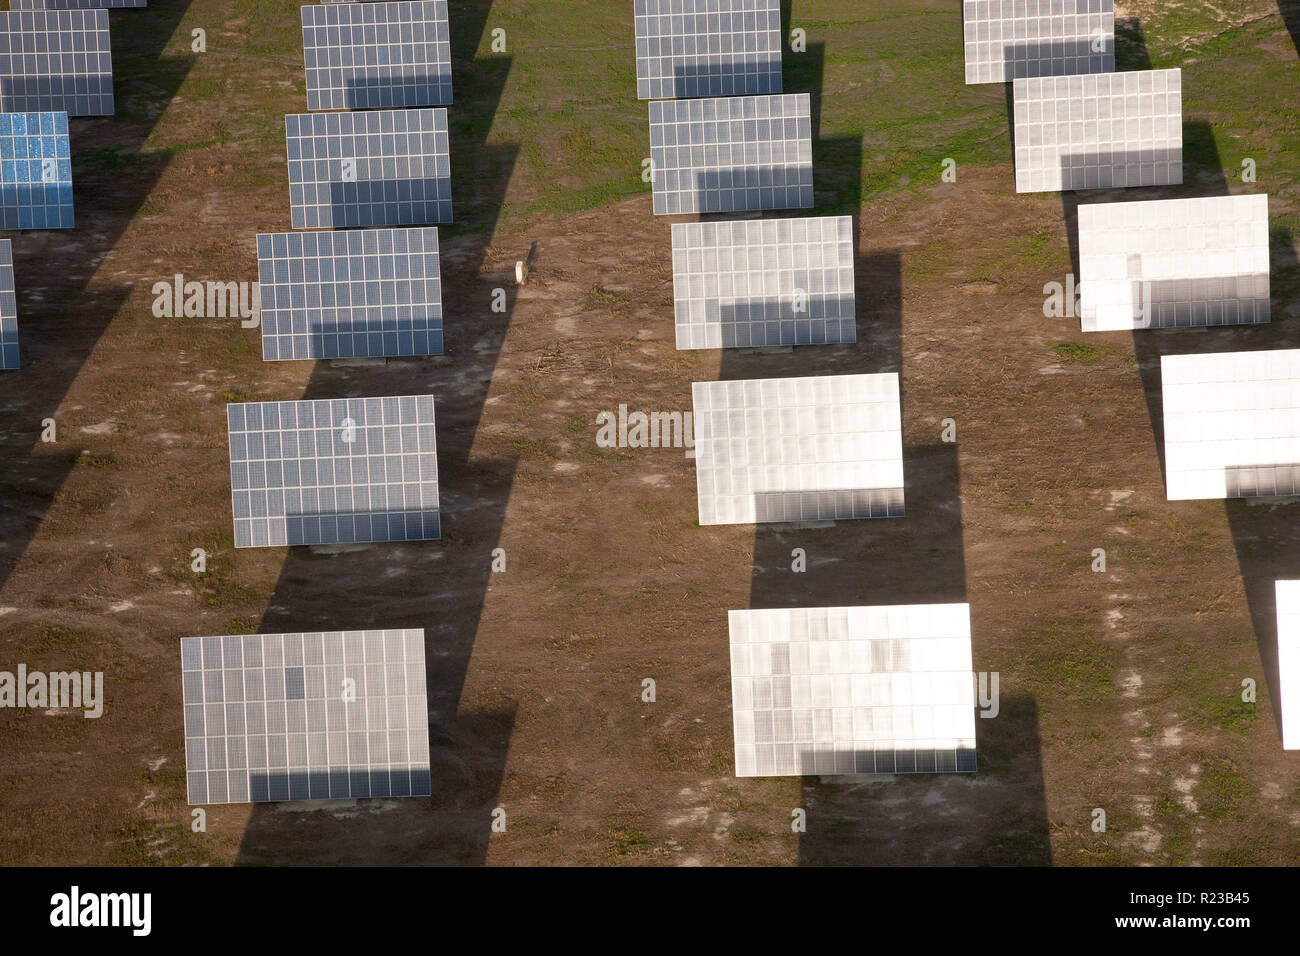 Aerial view  of solar panels in Huelva Province, Spain Stock Photo